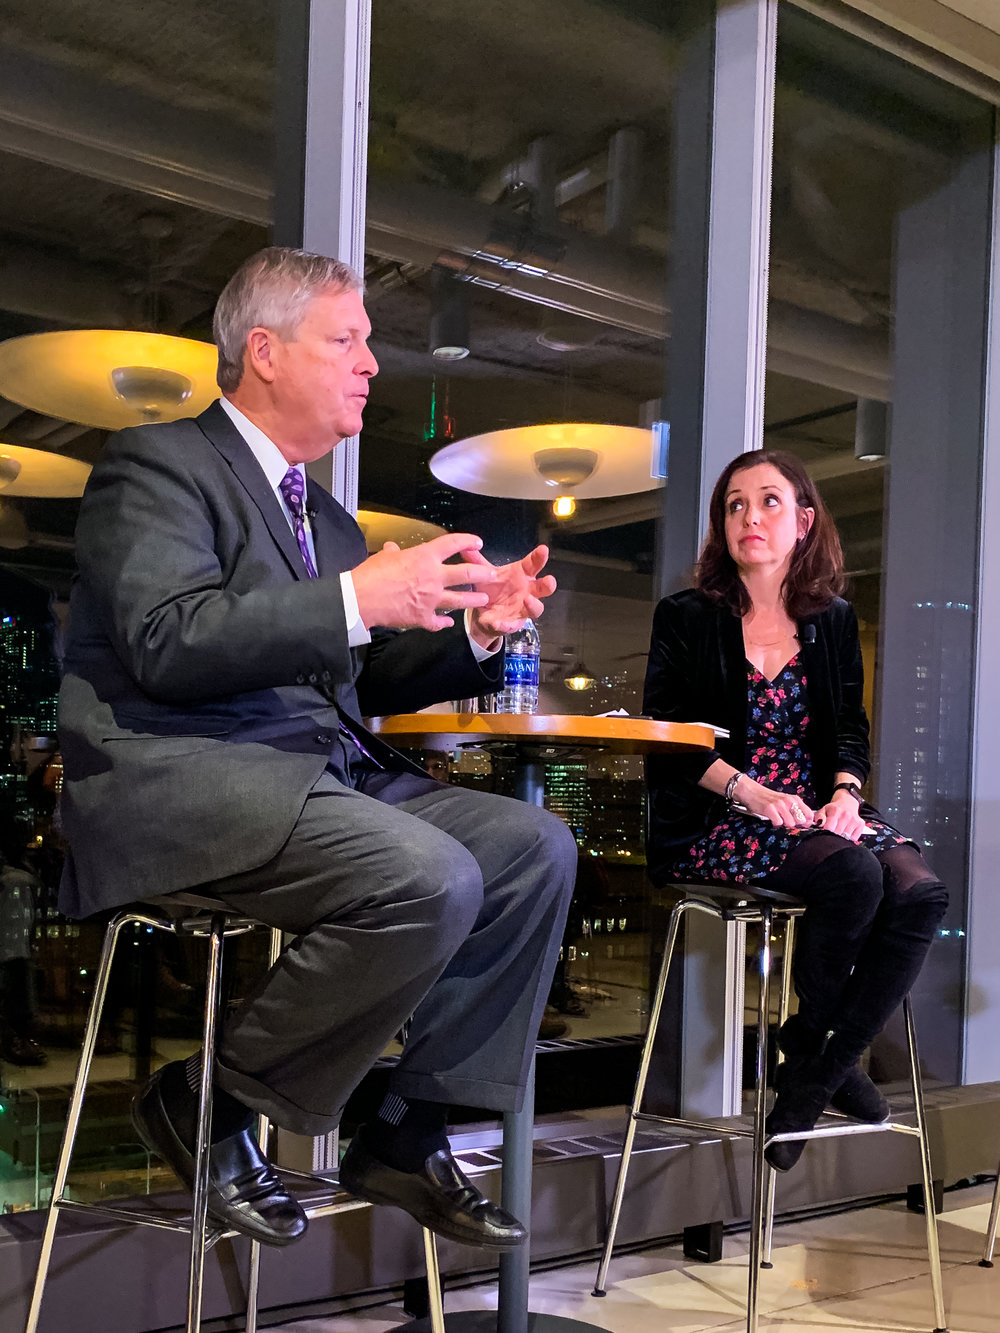 Former USDA Secretary of Agriculture Tom Vilsack with Danielle Nierenberg of Food Tank